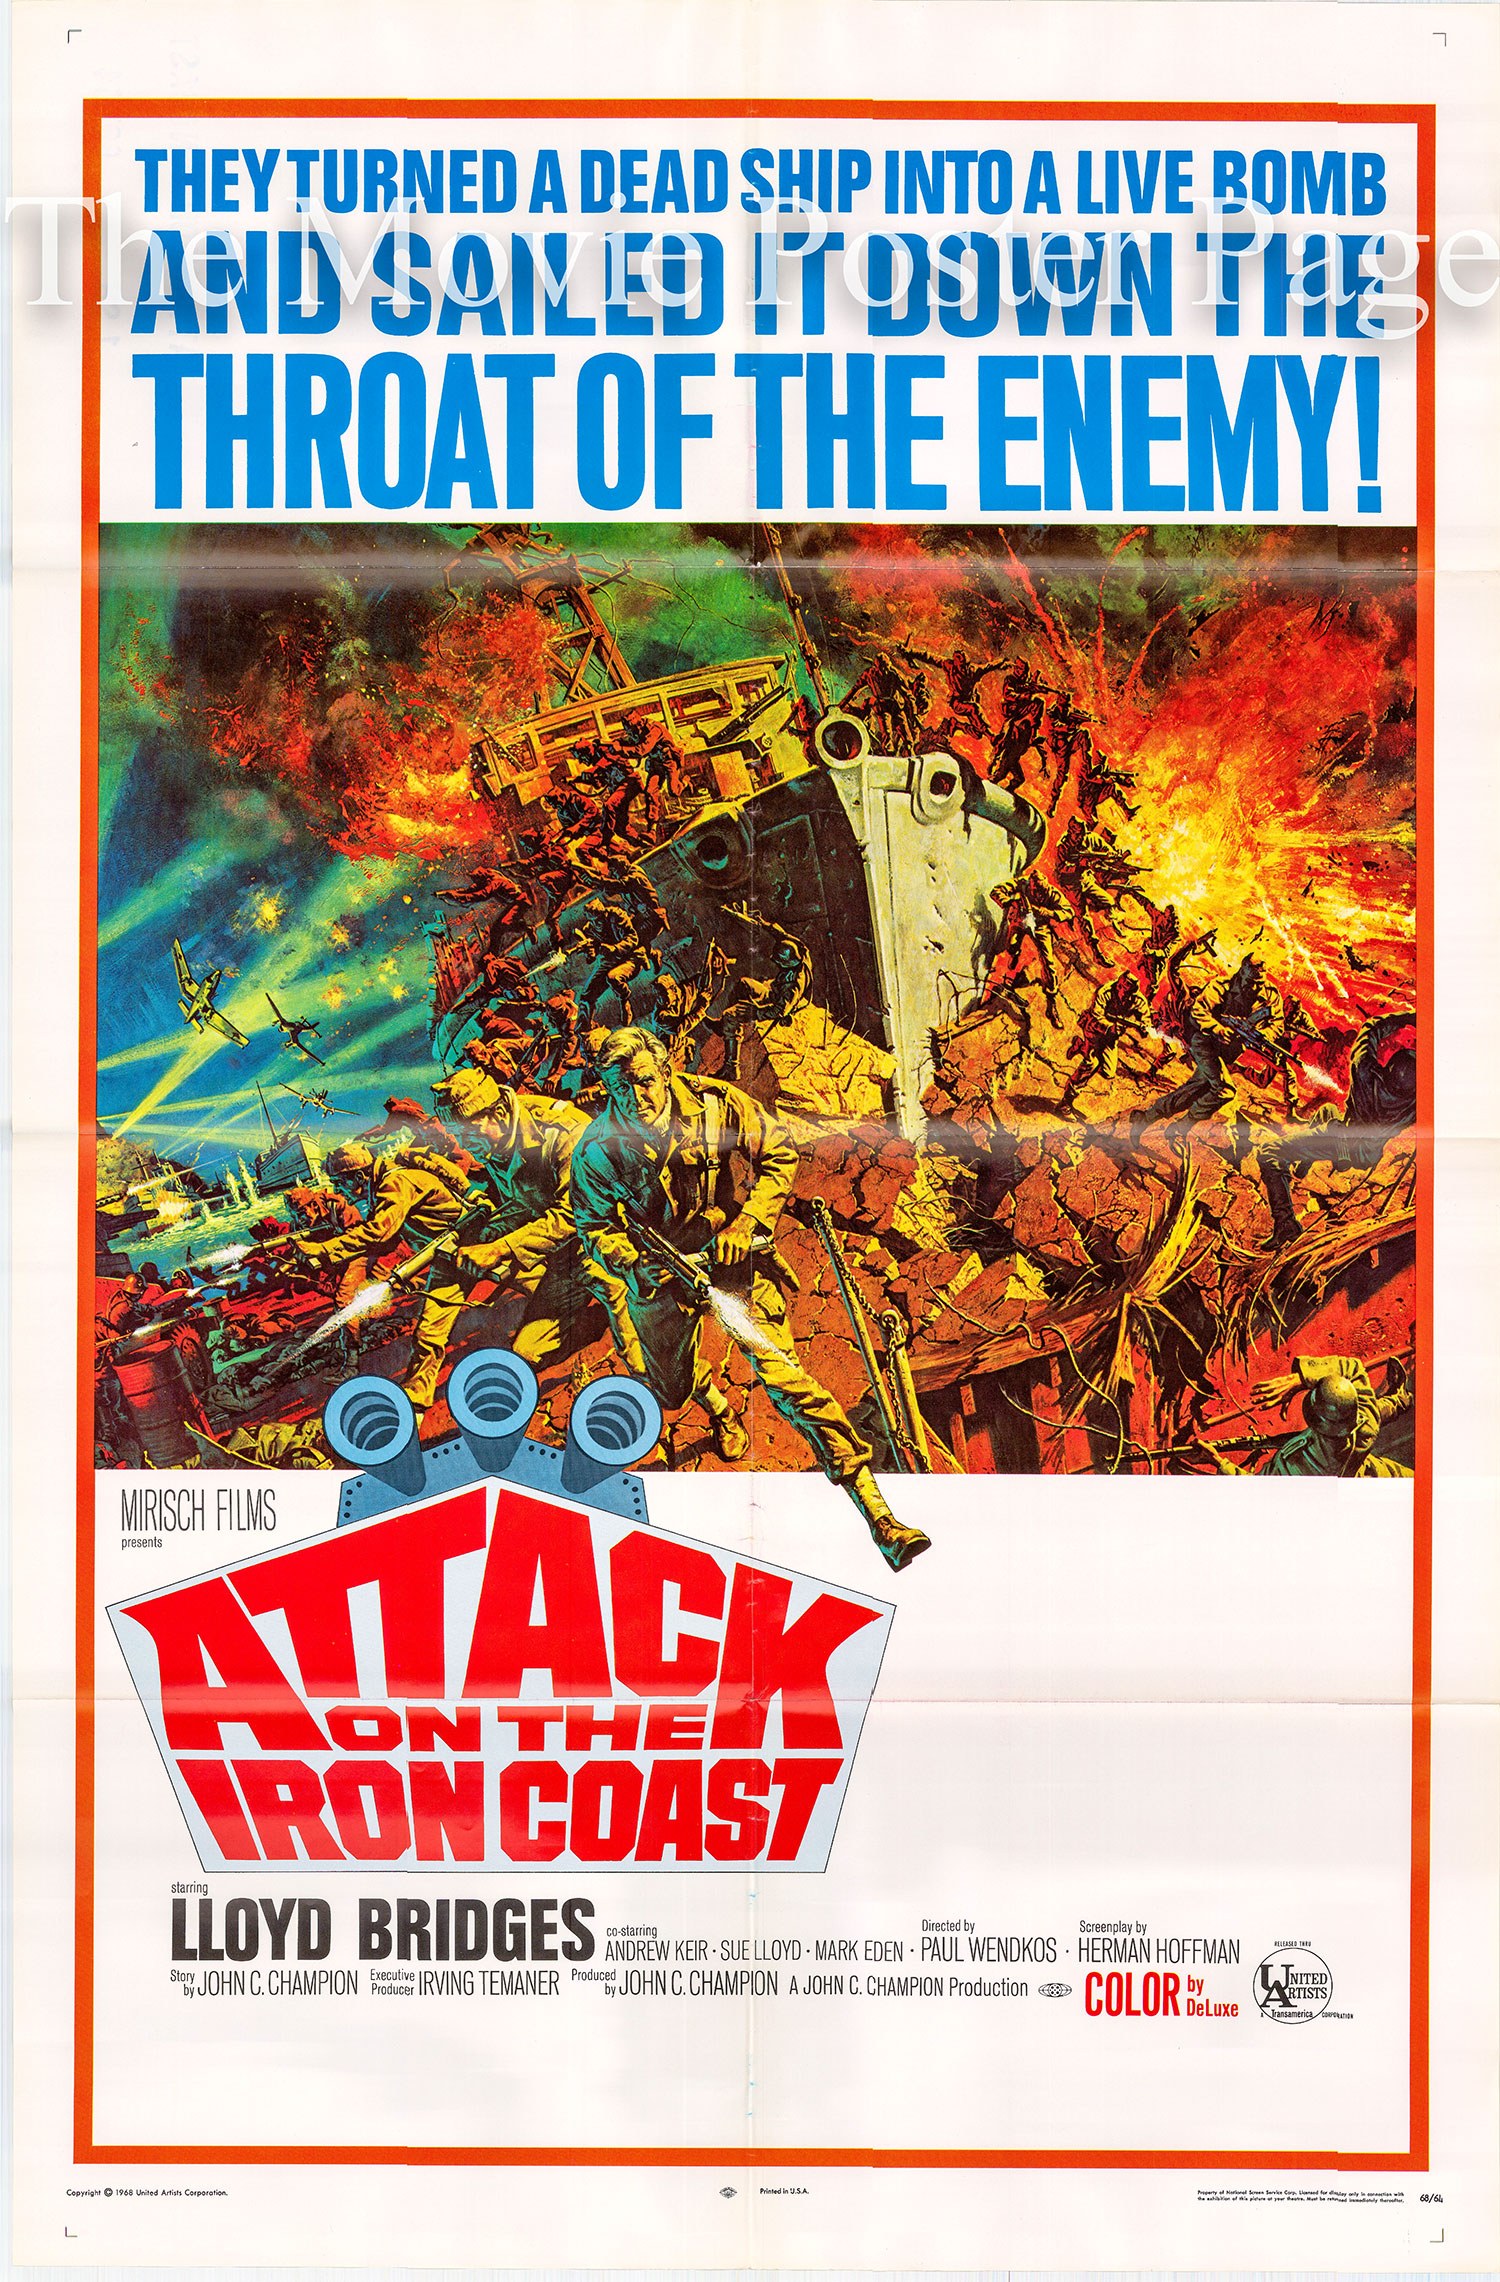 Pictured is a US one-sheet poster for the 1968 Paul Wendkos film Attack on the Iron Coast starring Lloyd Bridges.